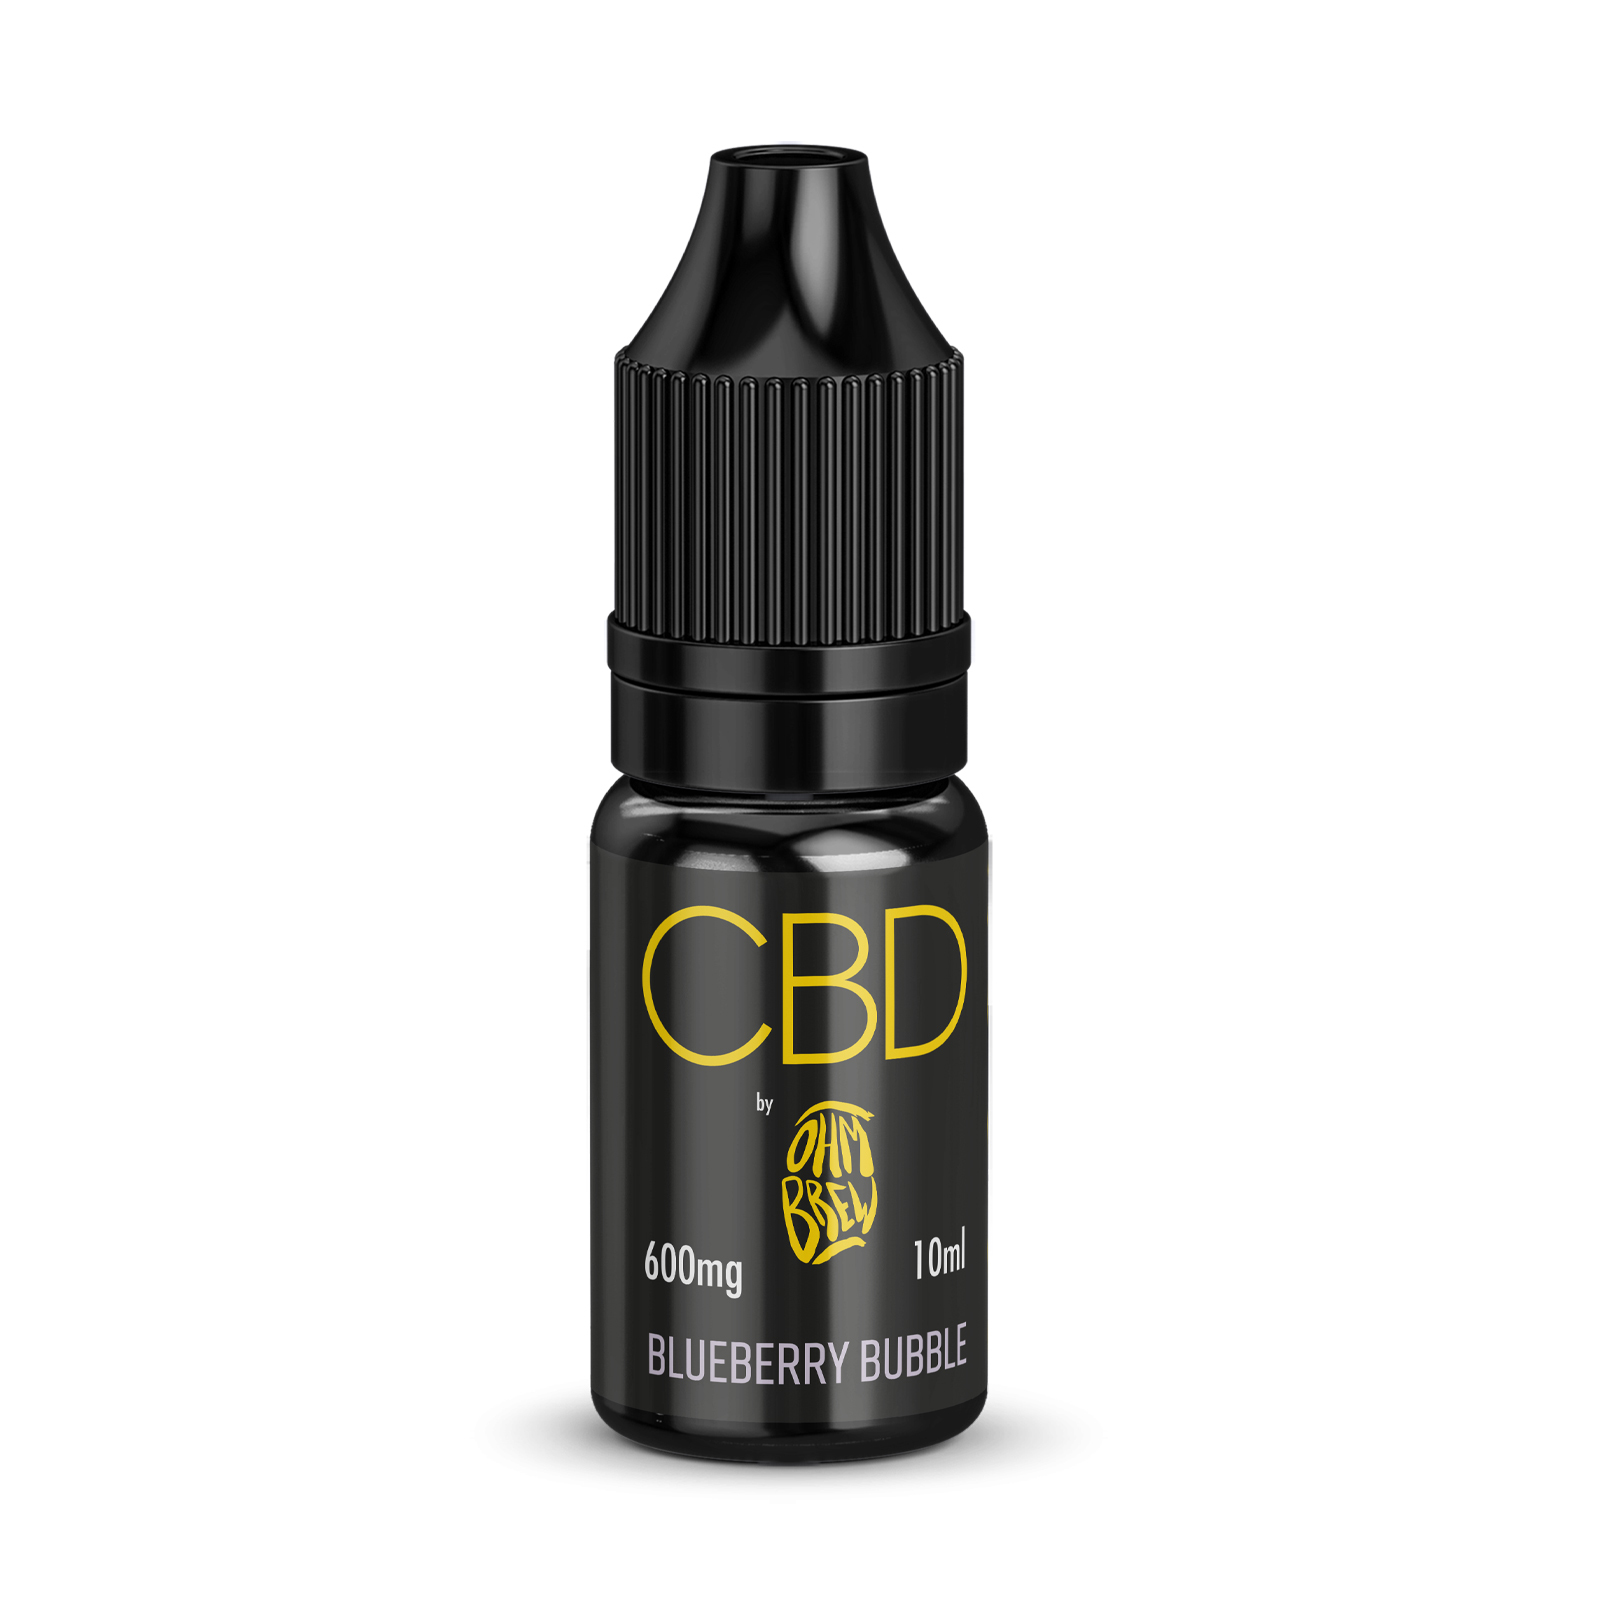 Ohm Brew Blueberry Bubble CBD 600mg